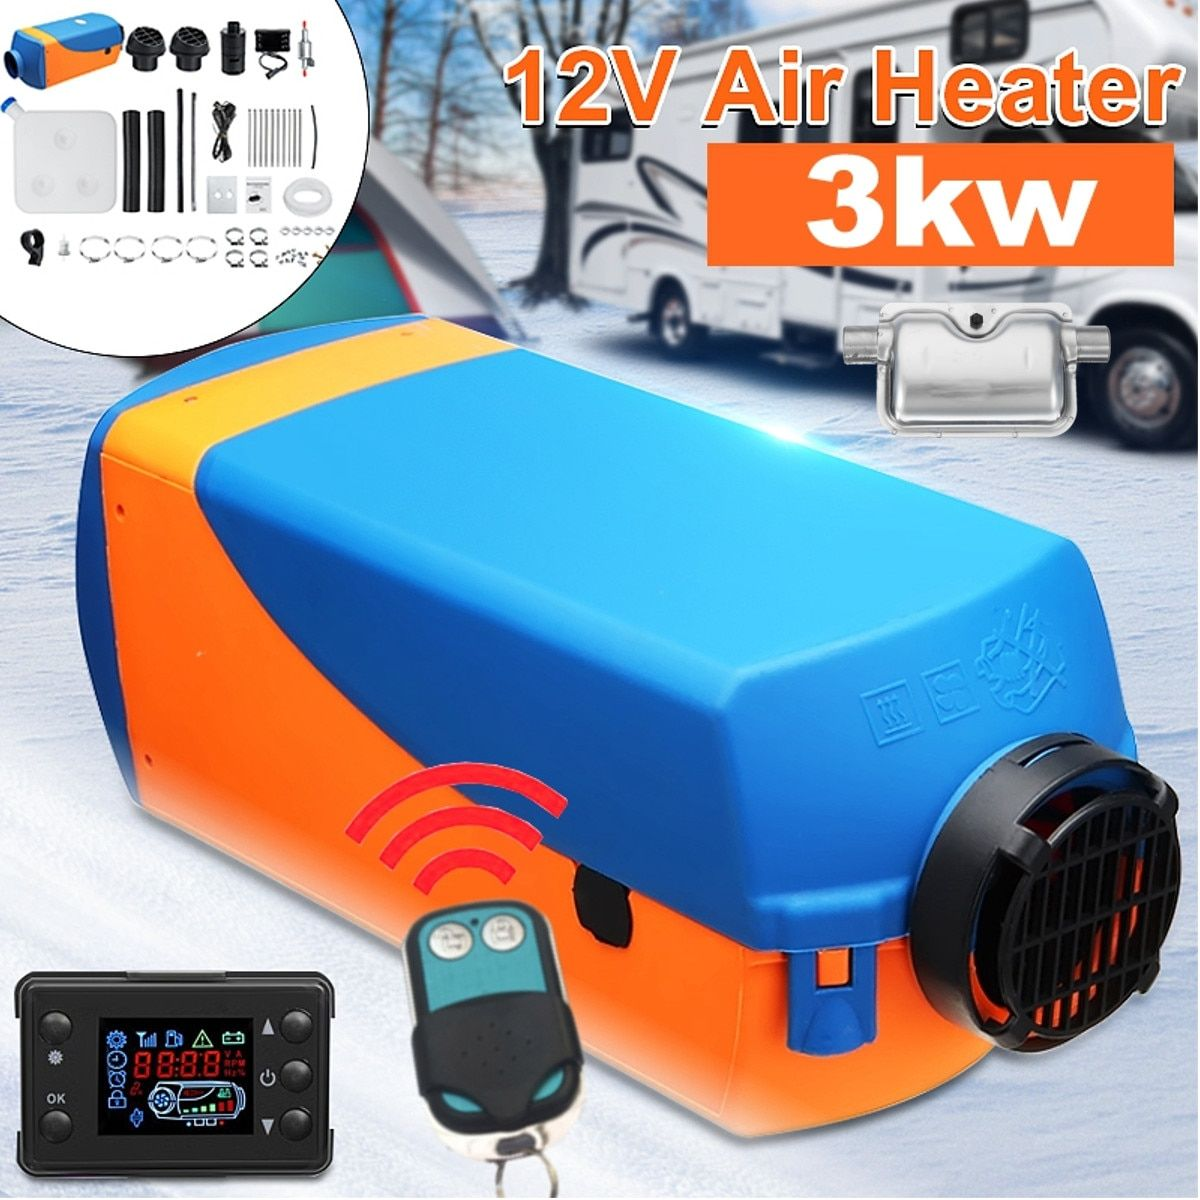 Free Silencer 3KW 12V Parking Heater with Remote Controller for LCD Switch Heating Machine Camping Home Bus Car Truck